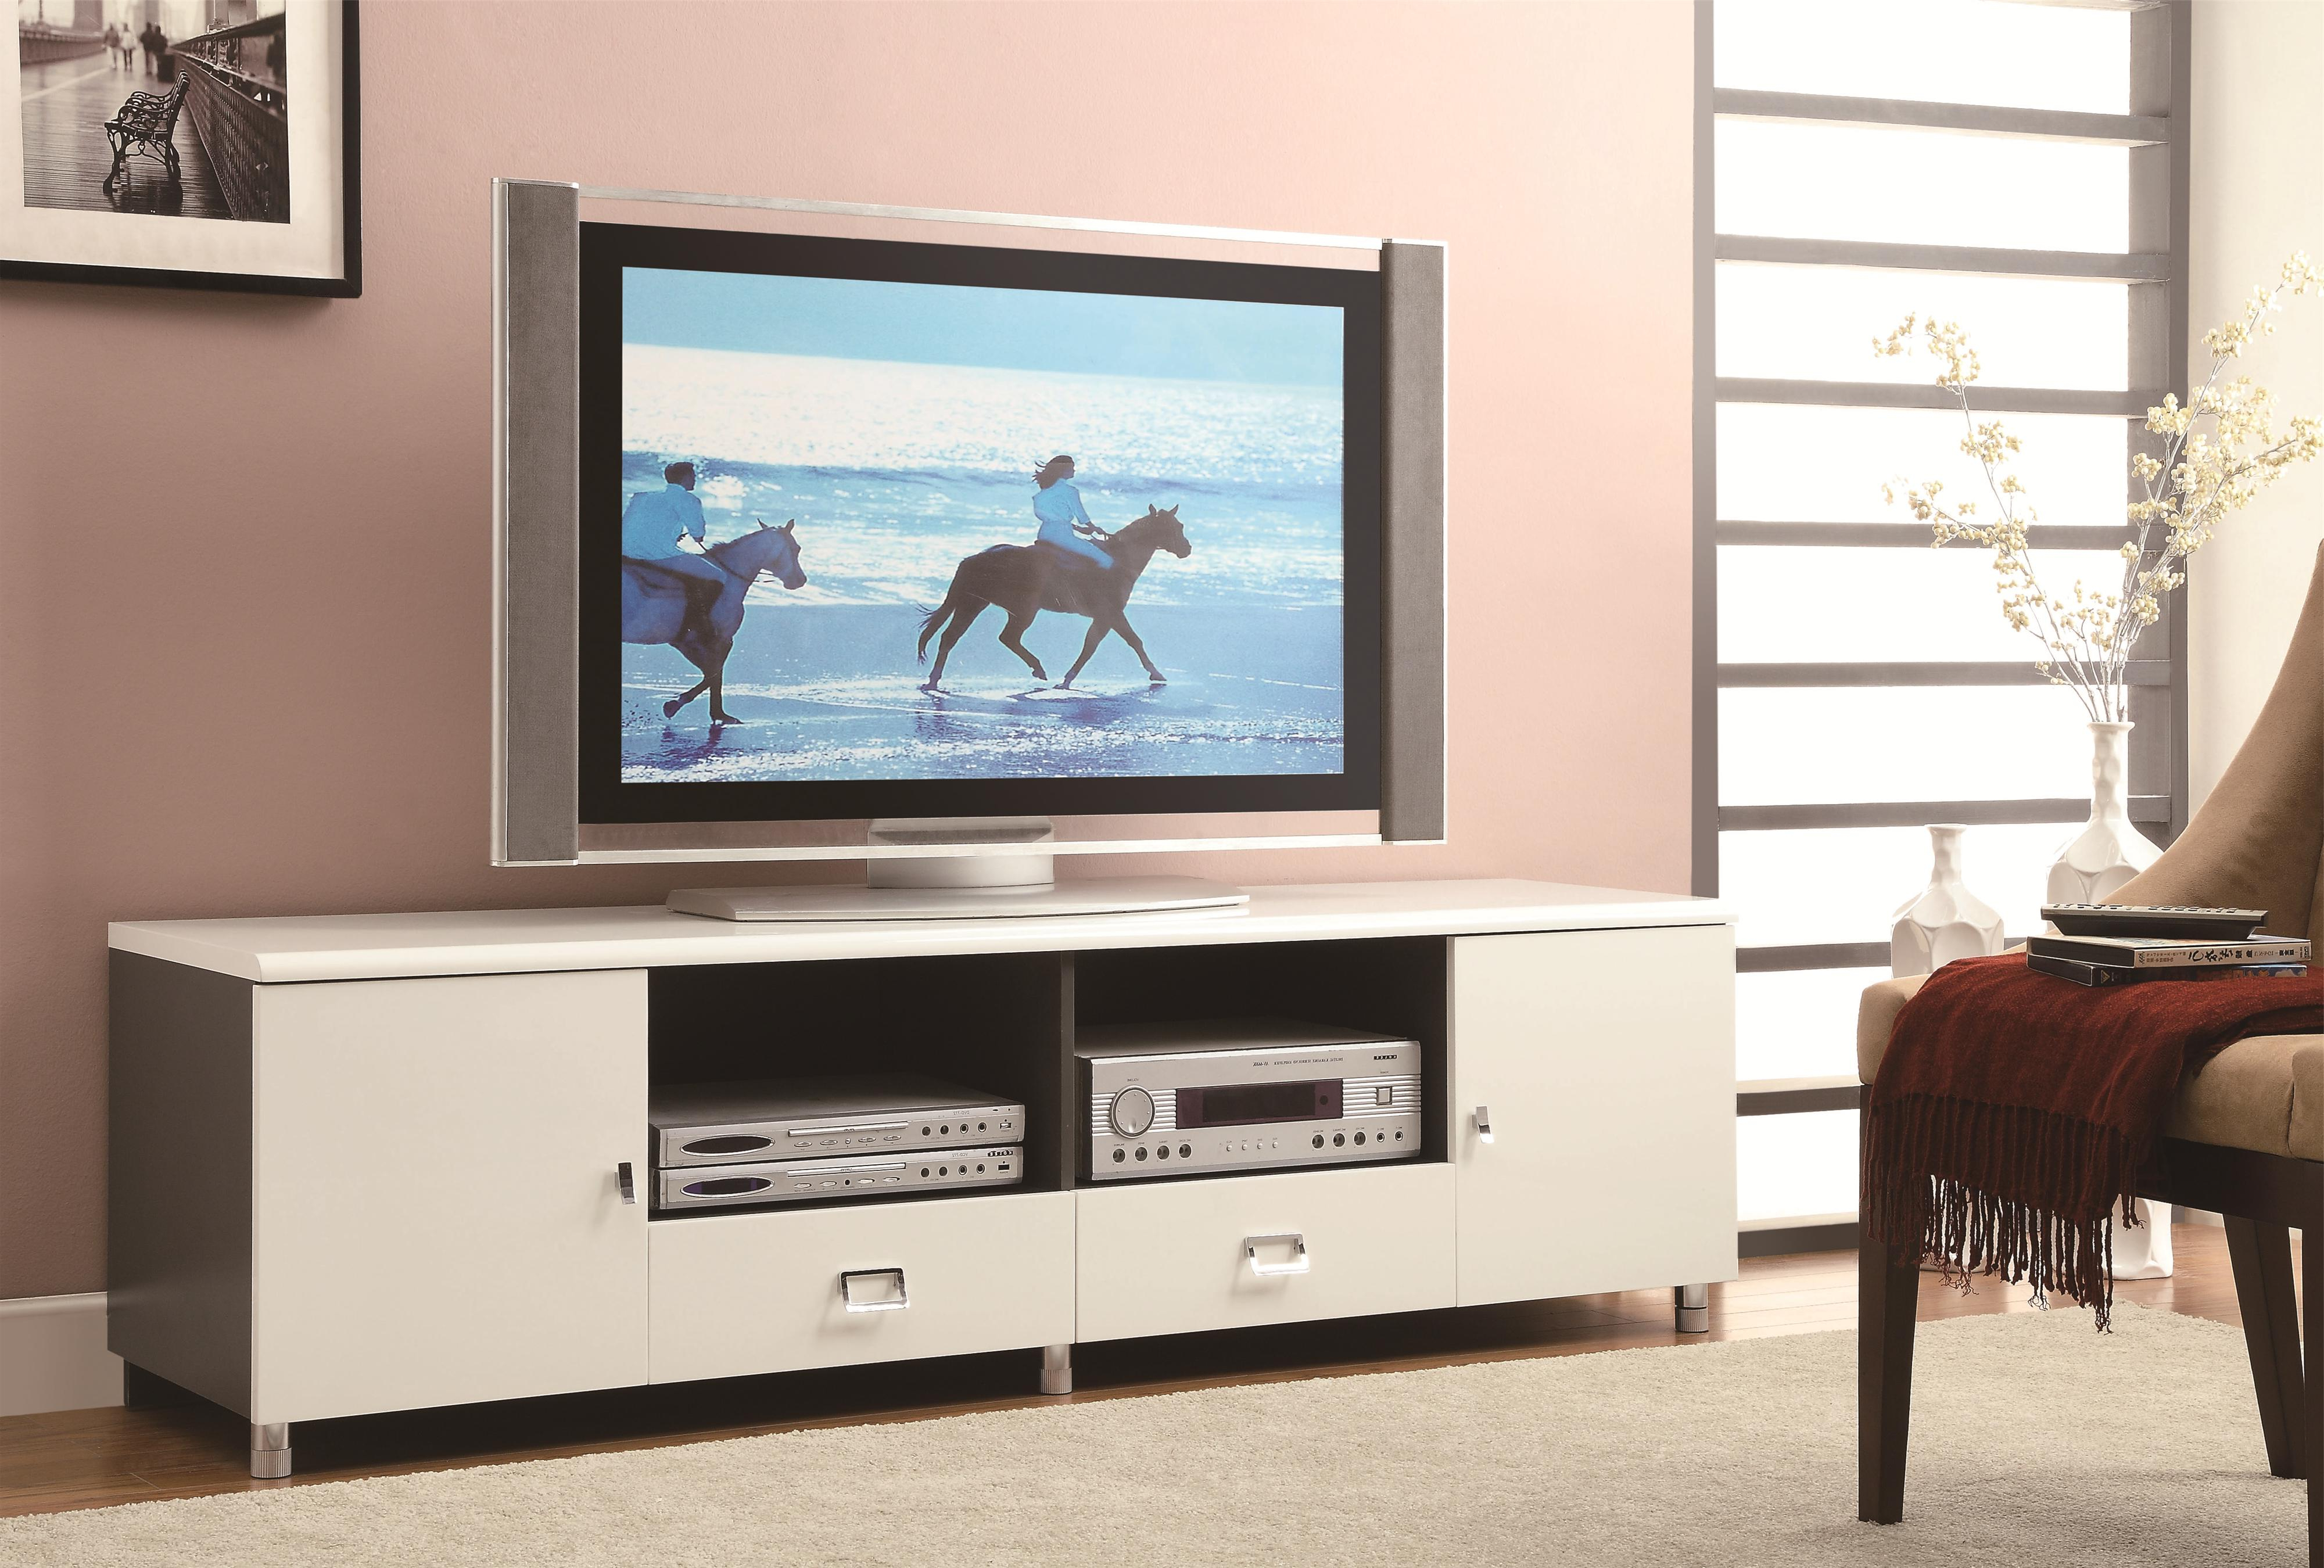 Modern Contemporary Tv Stands Throughout Fashionable Coaster Tv Stands 700910 Contemporary Tv Console With Chrome (View 12 of 20)